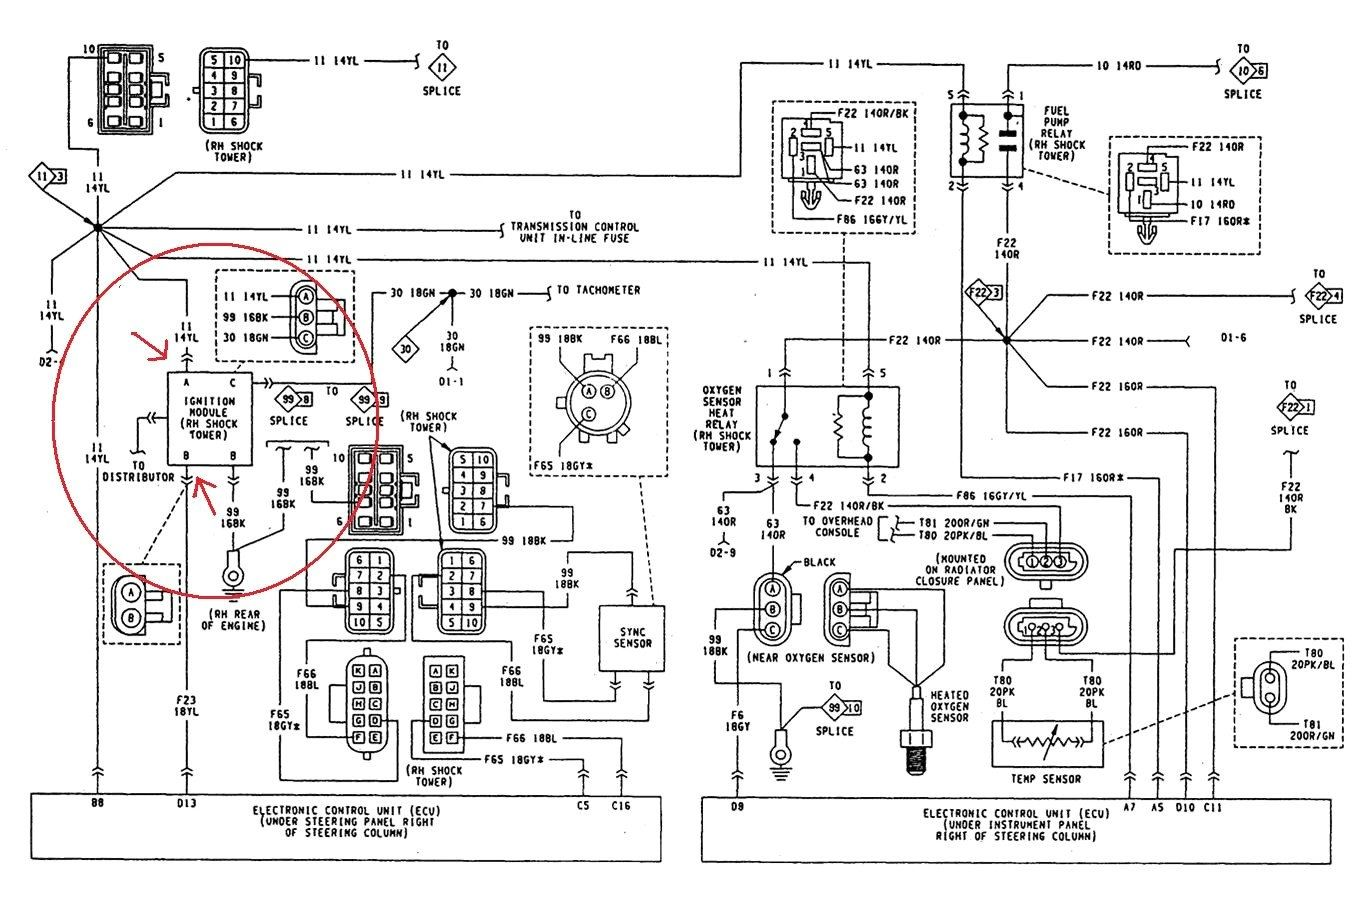 small resolution of 1990 jeep yj vacuum diagram 1990 jeep wrangler 4 2 vacuum diagram1990 jeep yj vacuum diagram